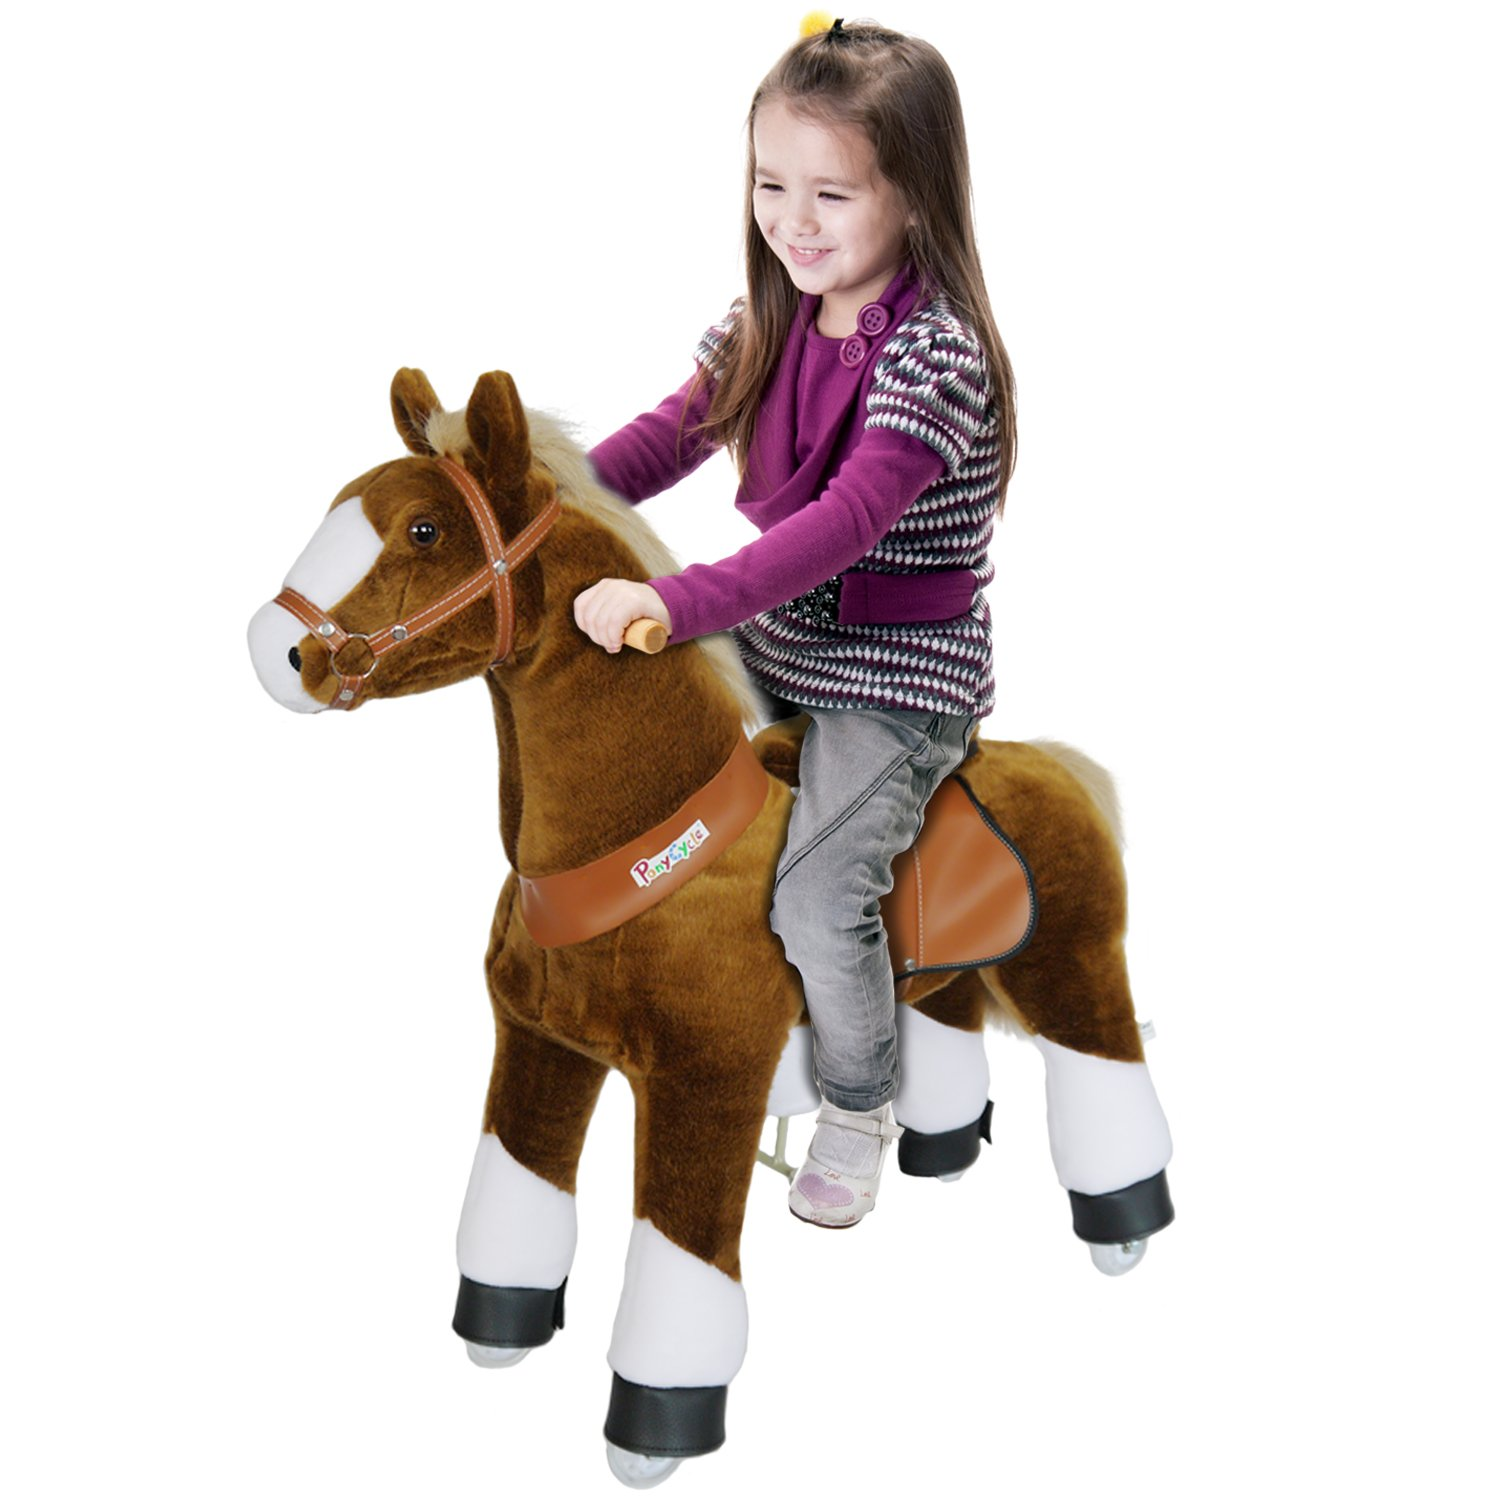 PonyCycle Official Ride-On Horse No Battery No Electricity Mechanical Pony Brown with White Hoof Giddy up Pony Plush Walking Animal for Age 4-9 Years Medium Size - N4151 by PonyCycle (Image #2)